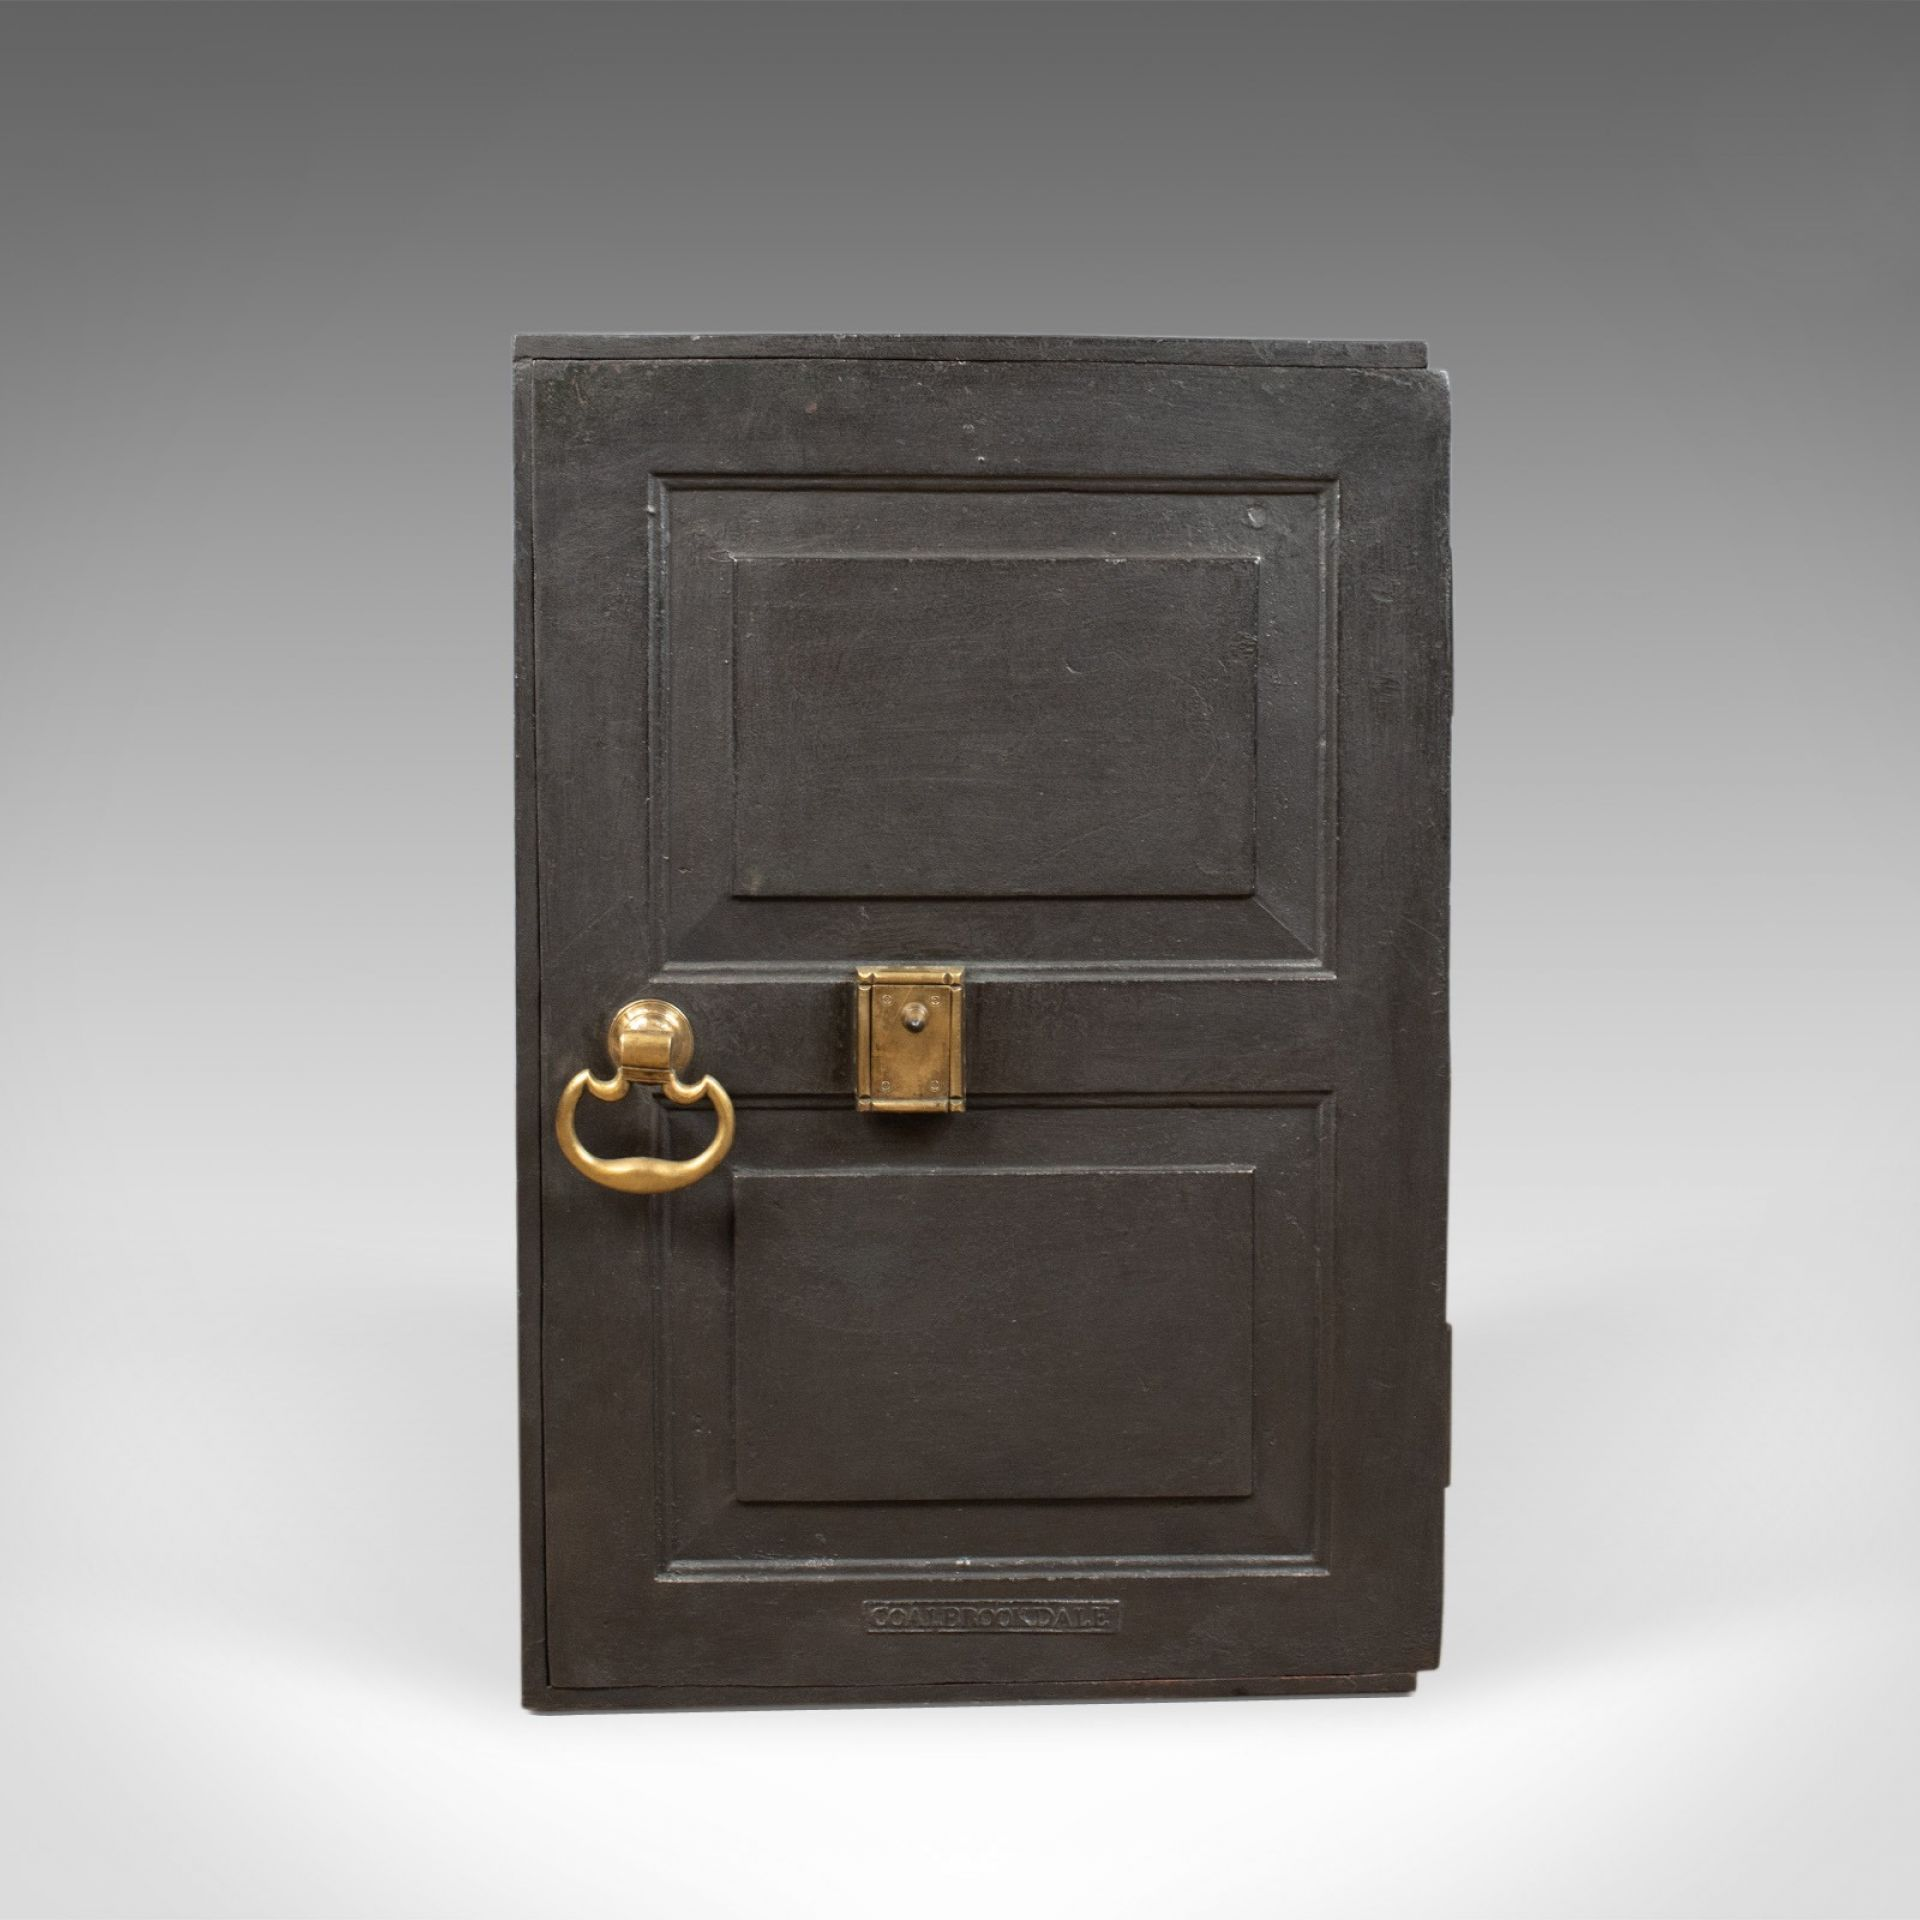 Antique Safe, English, Victorian, Cast Iron, Coalbrookdale, Circa 1880